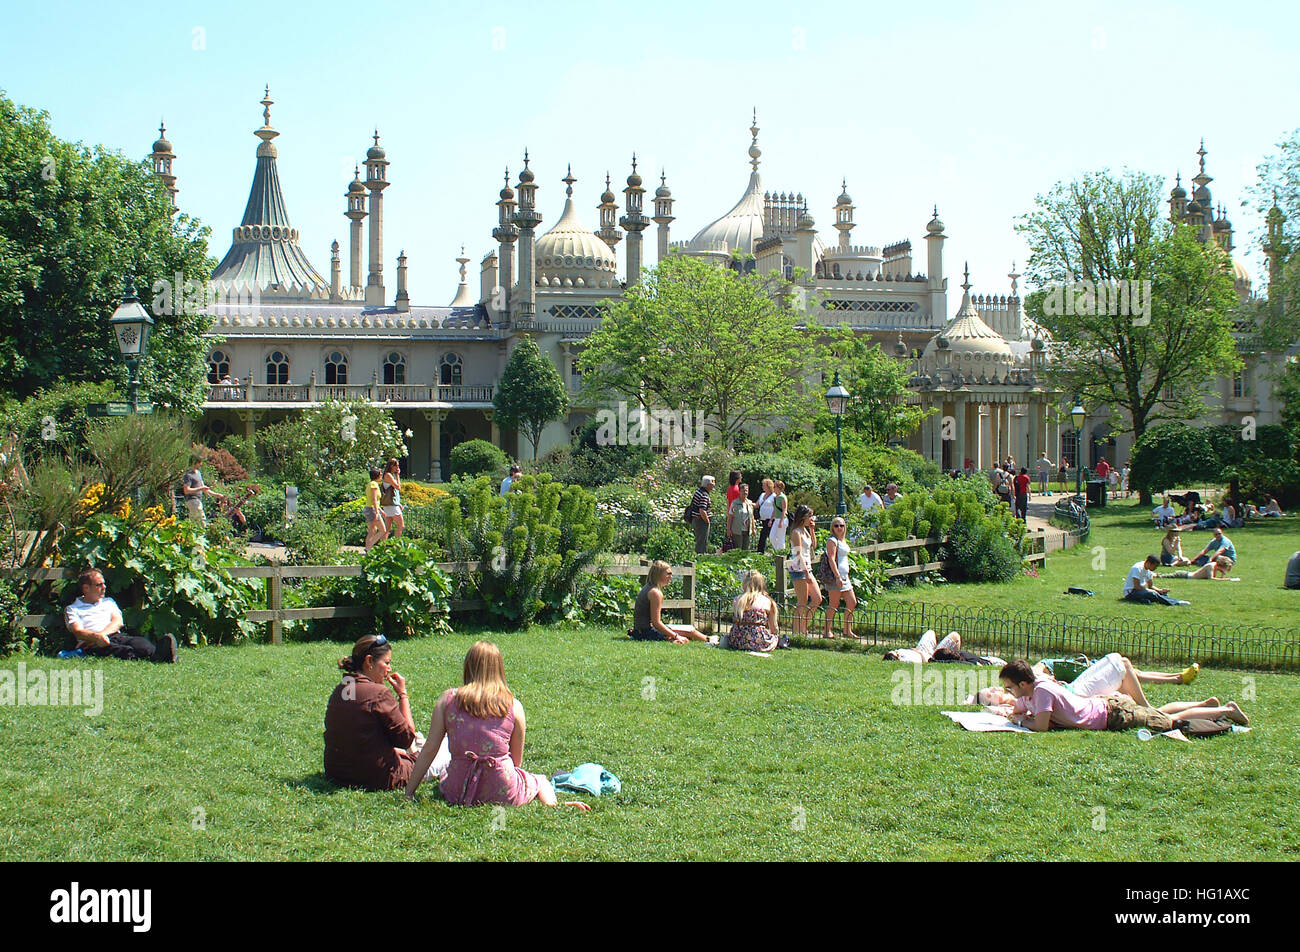 People relaxing in the parks and gardens around Brighton Royal Pavilion. - Stock Image